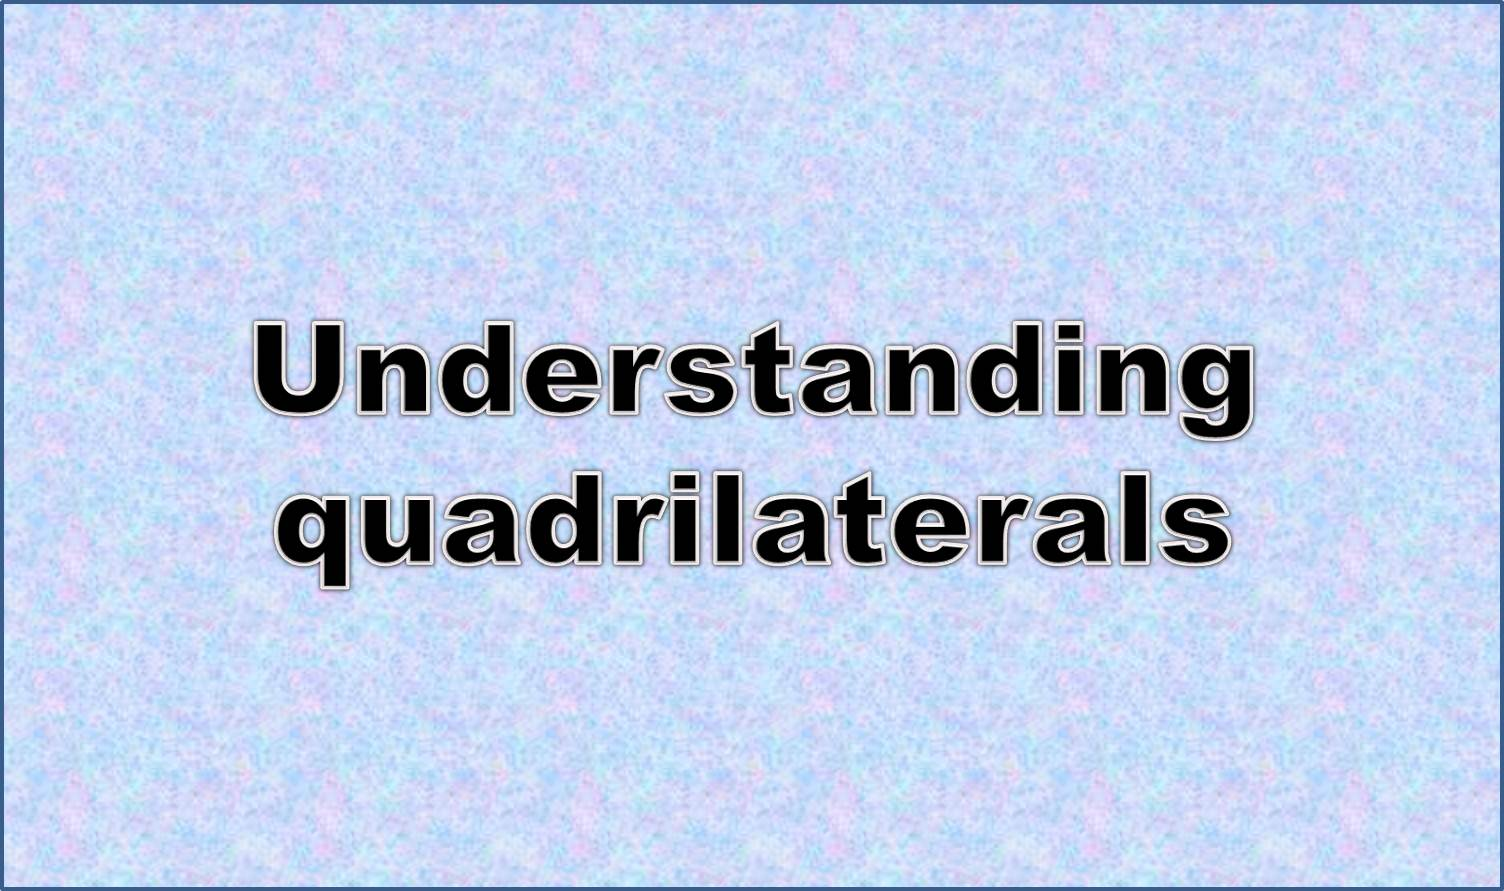 http://study.aisectonline.com/images/Quadrilateral properties.jpg